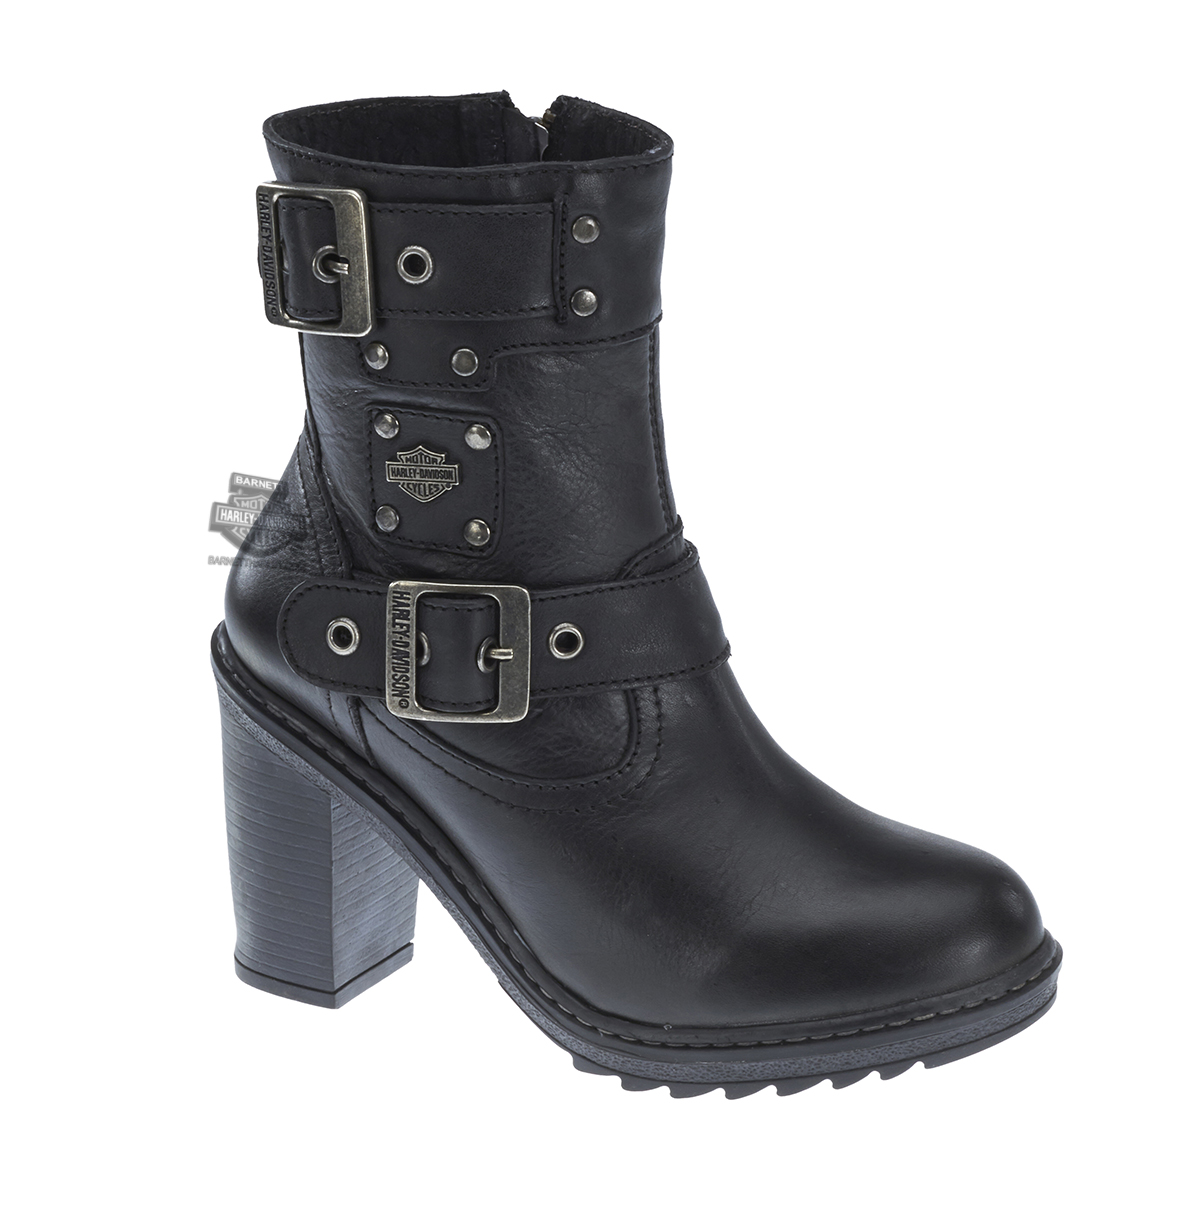 83831 Harley Davidson 174 Womens Ludwell Black Leather Mid